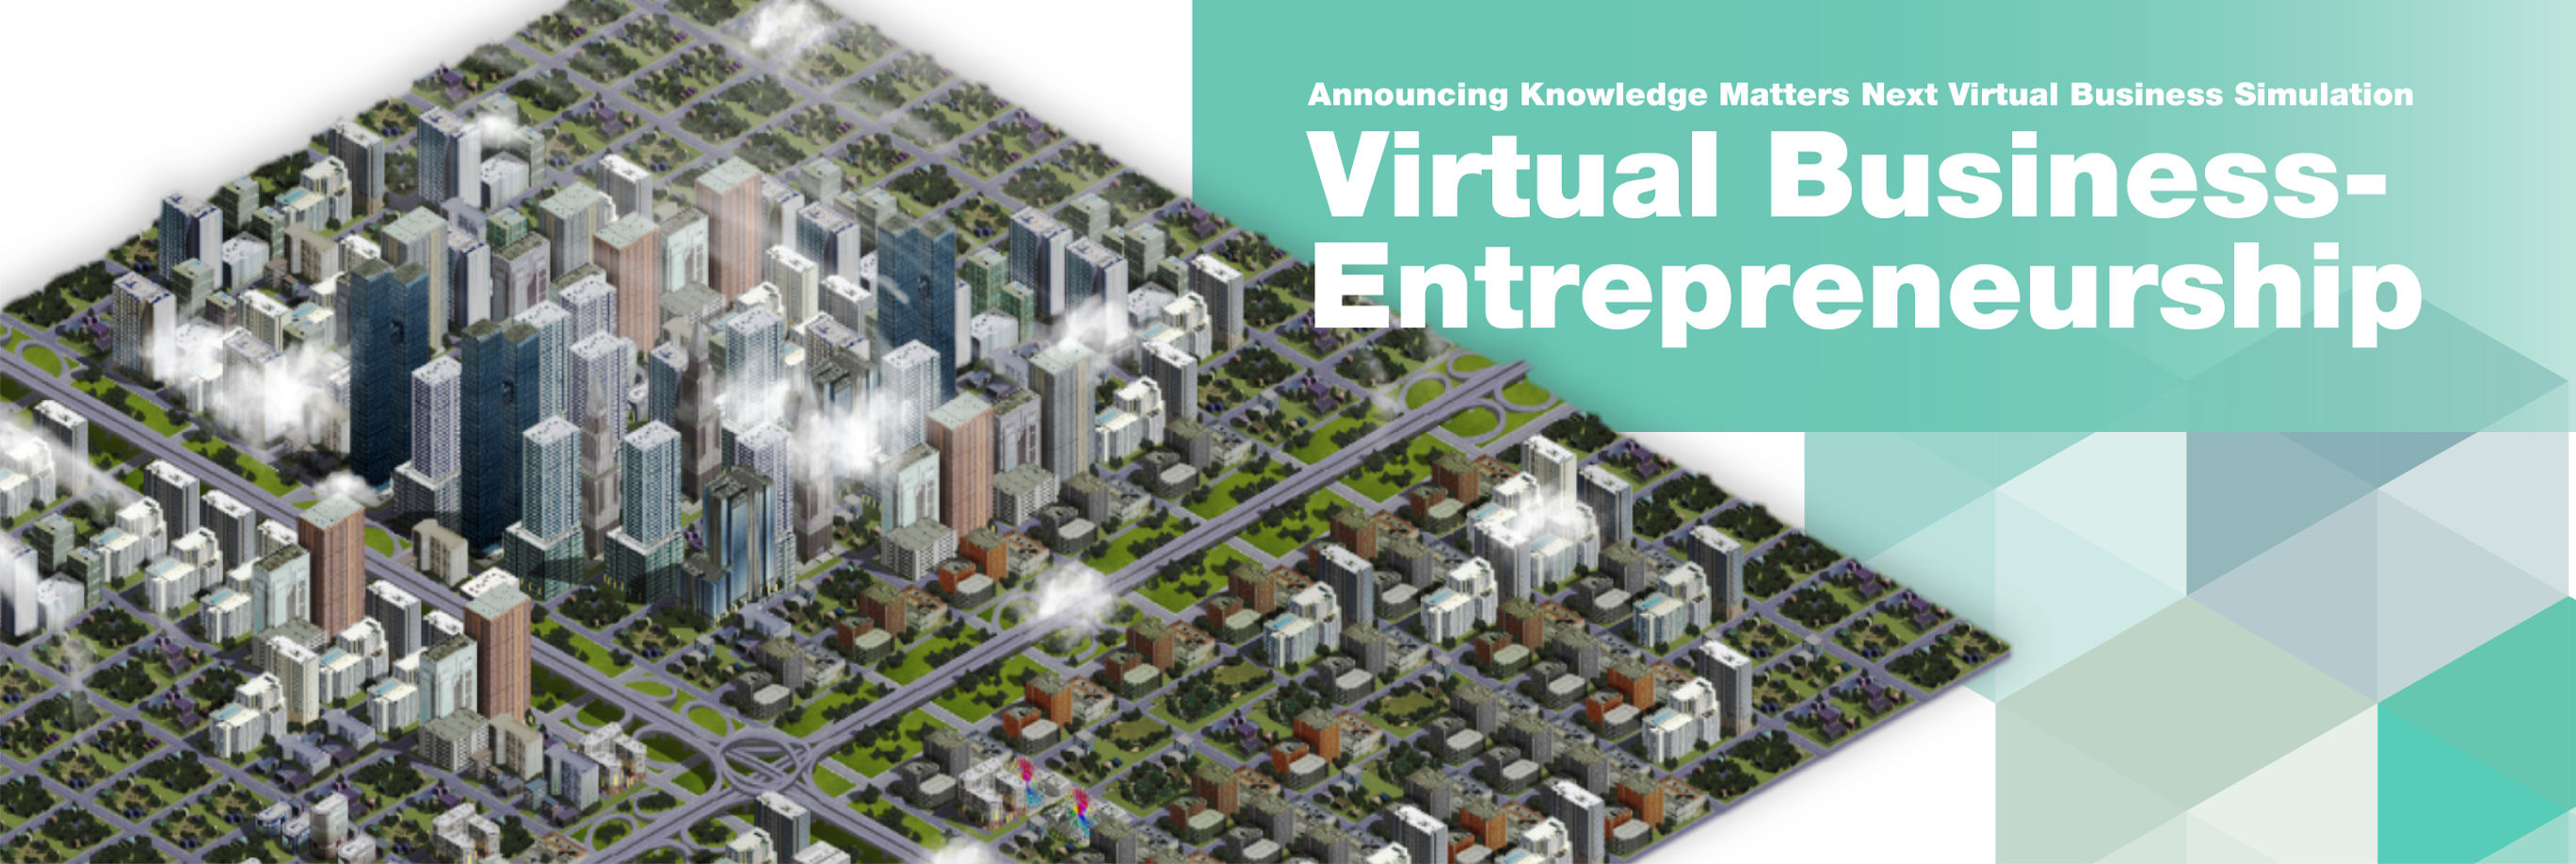 Virtual Business Entrepreneurship - Learn to Build a Business